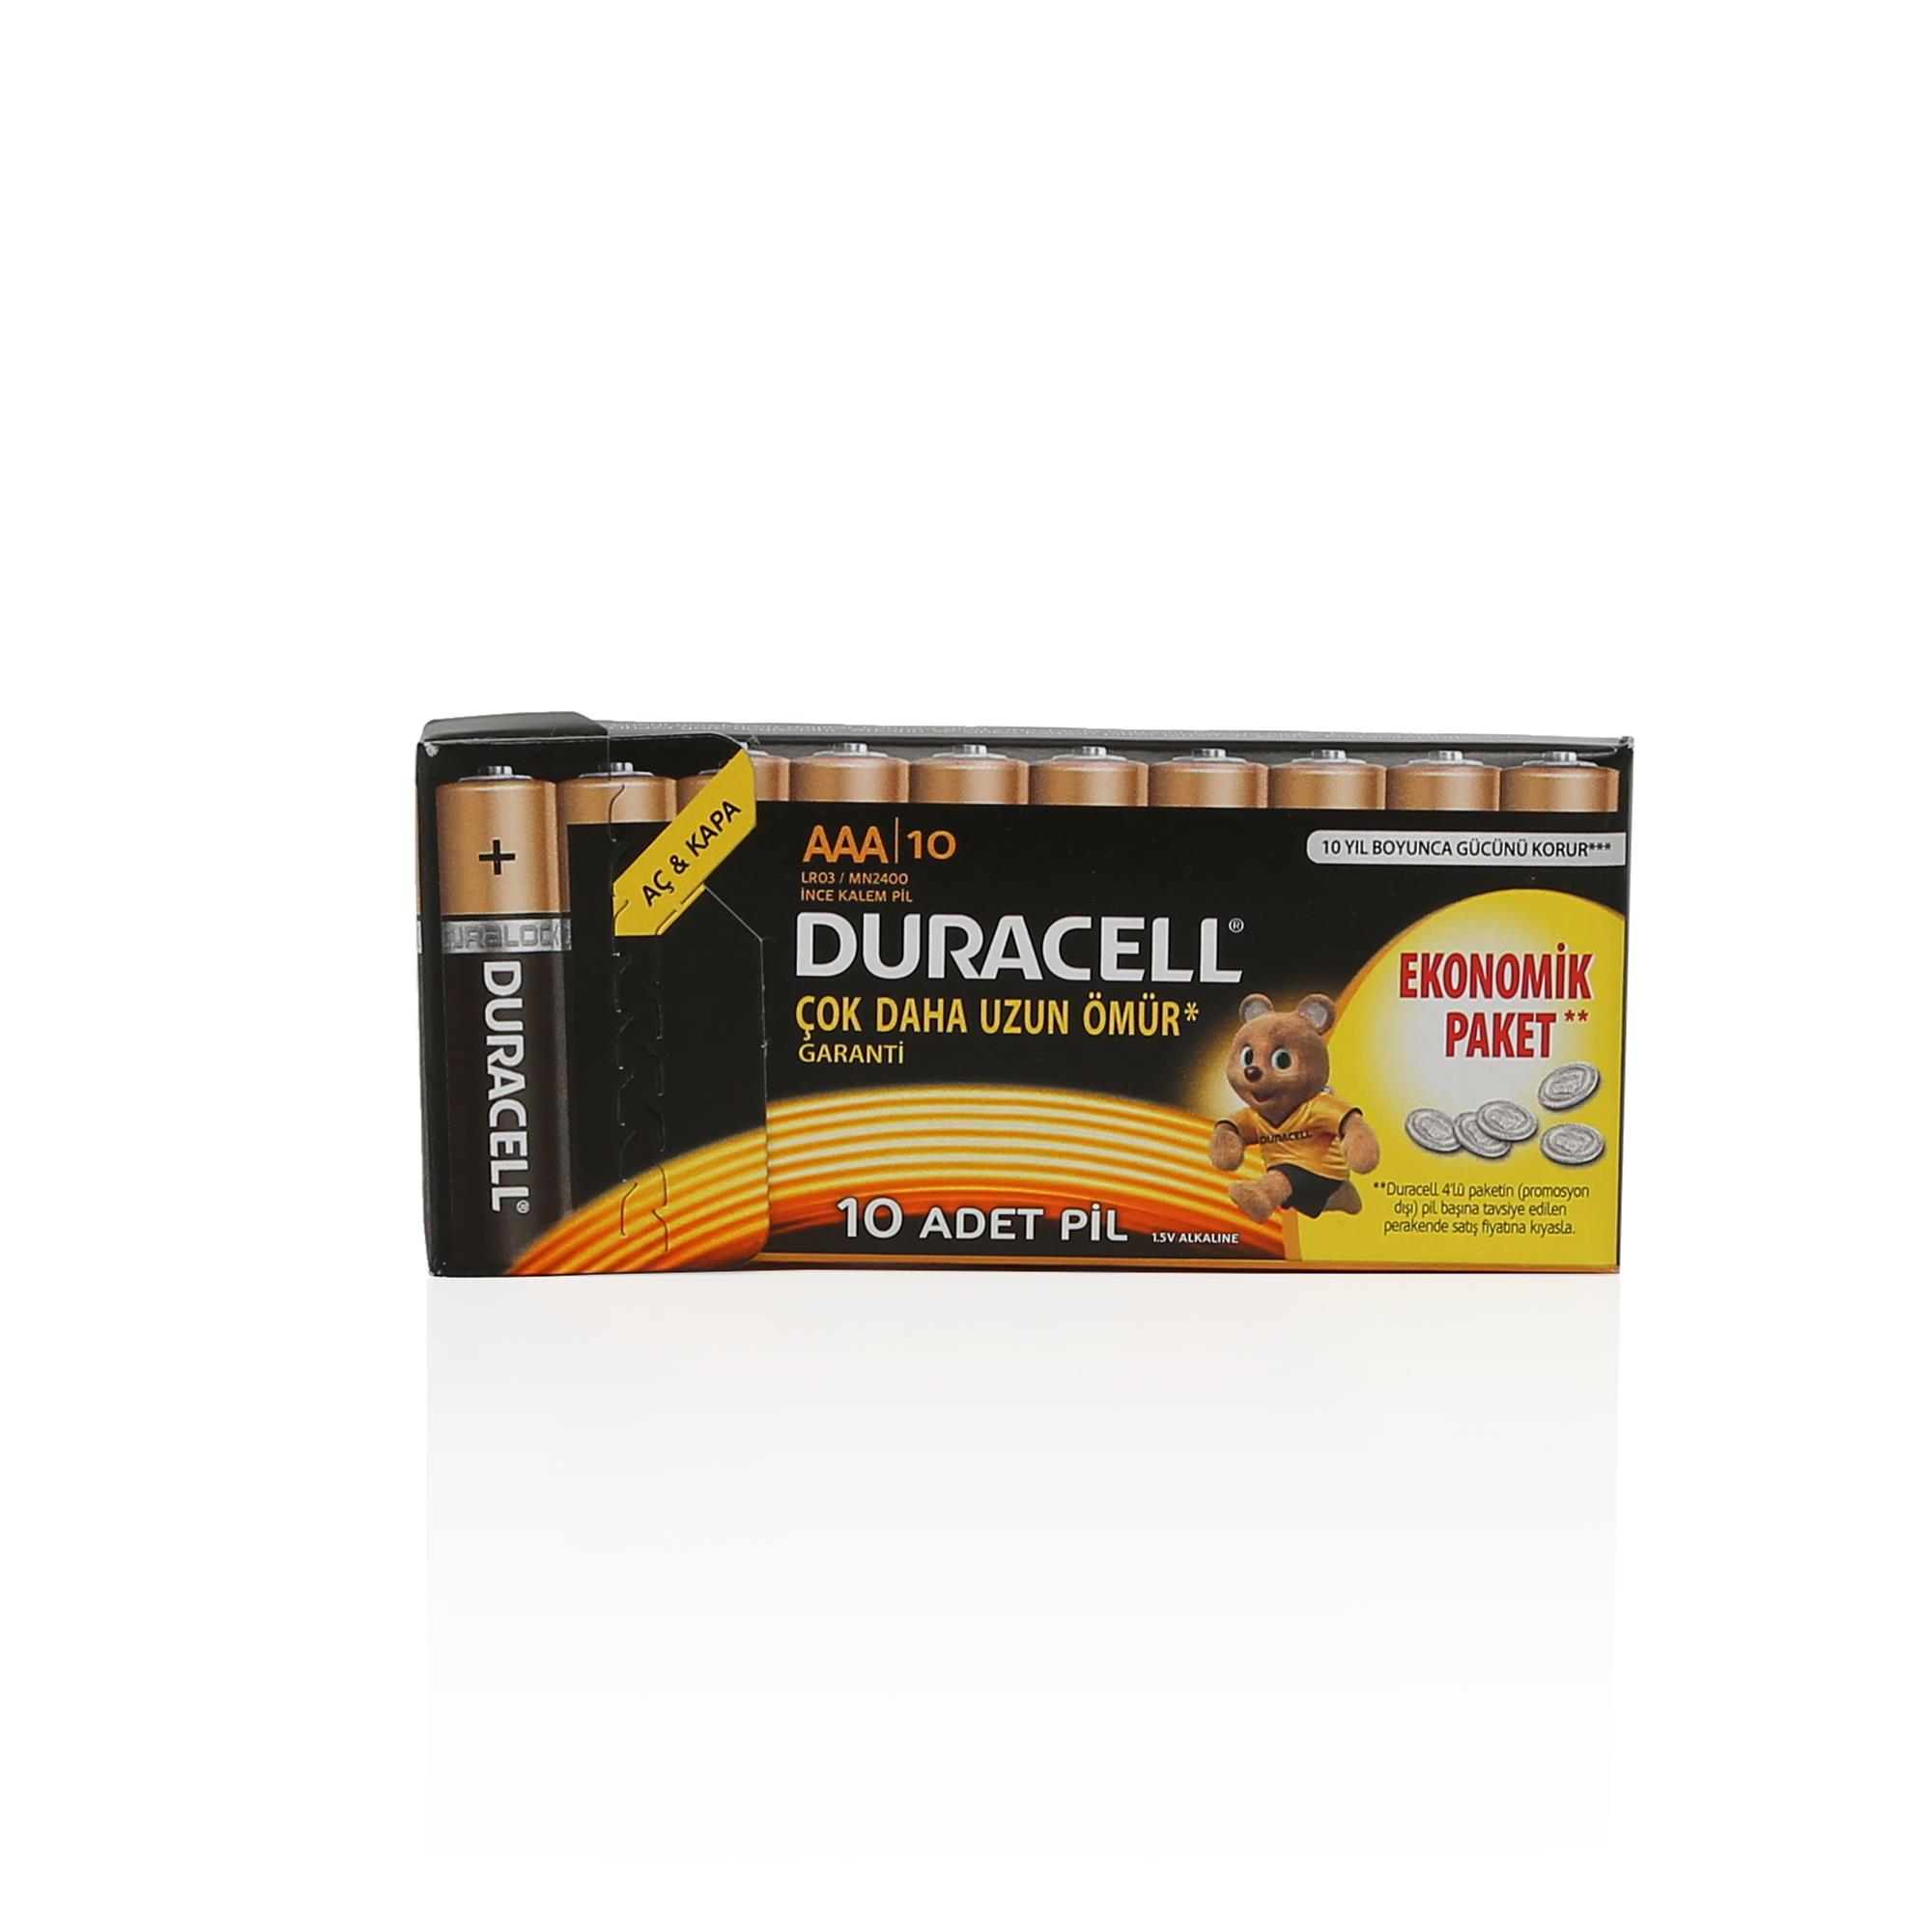 DURACELL İNCE PİL 10LU